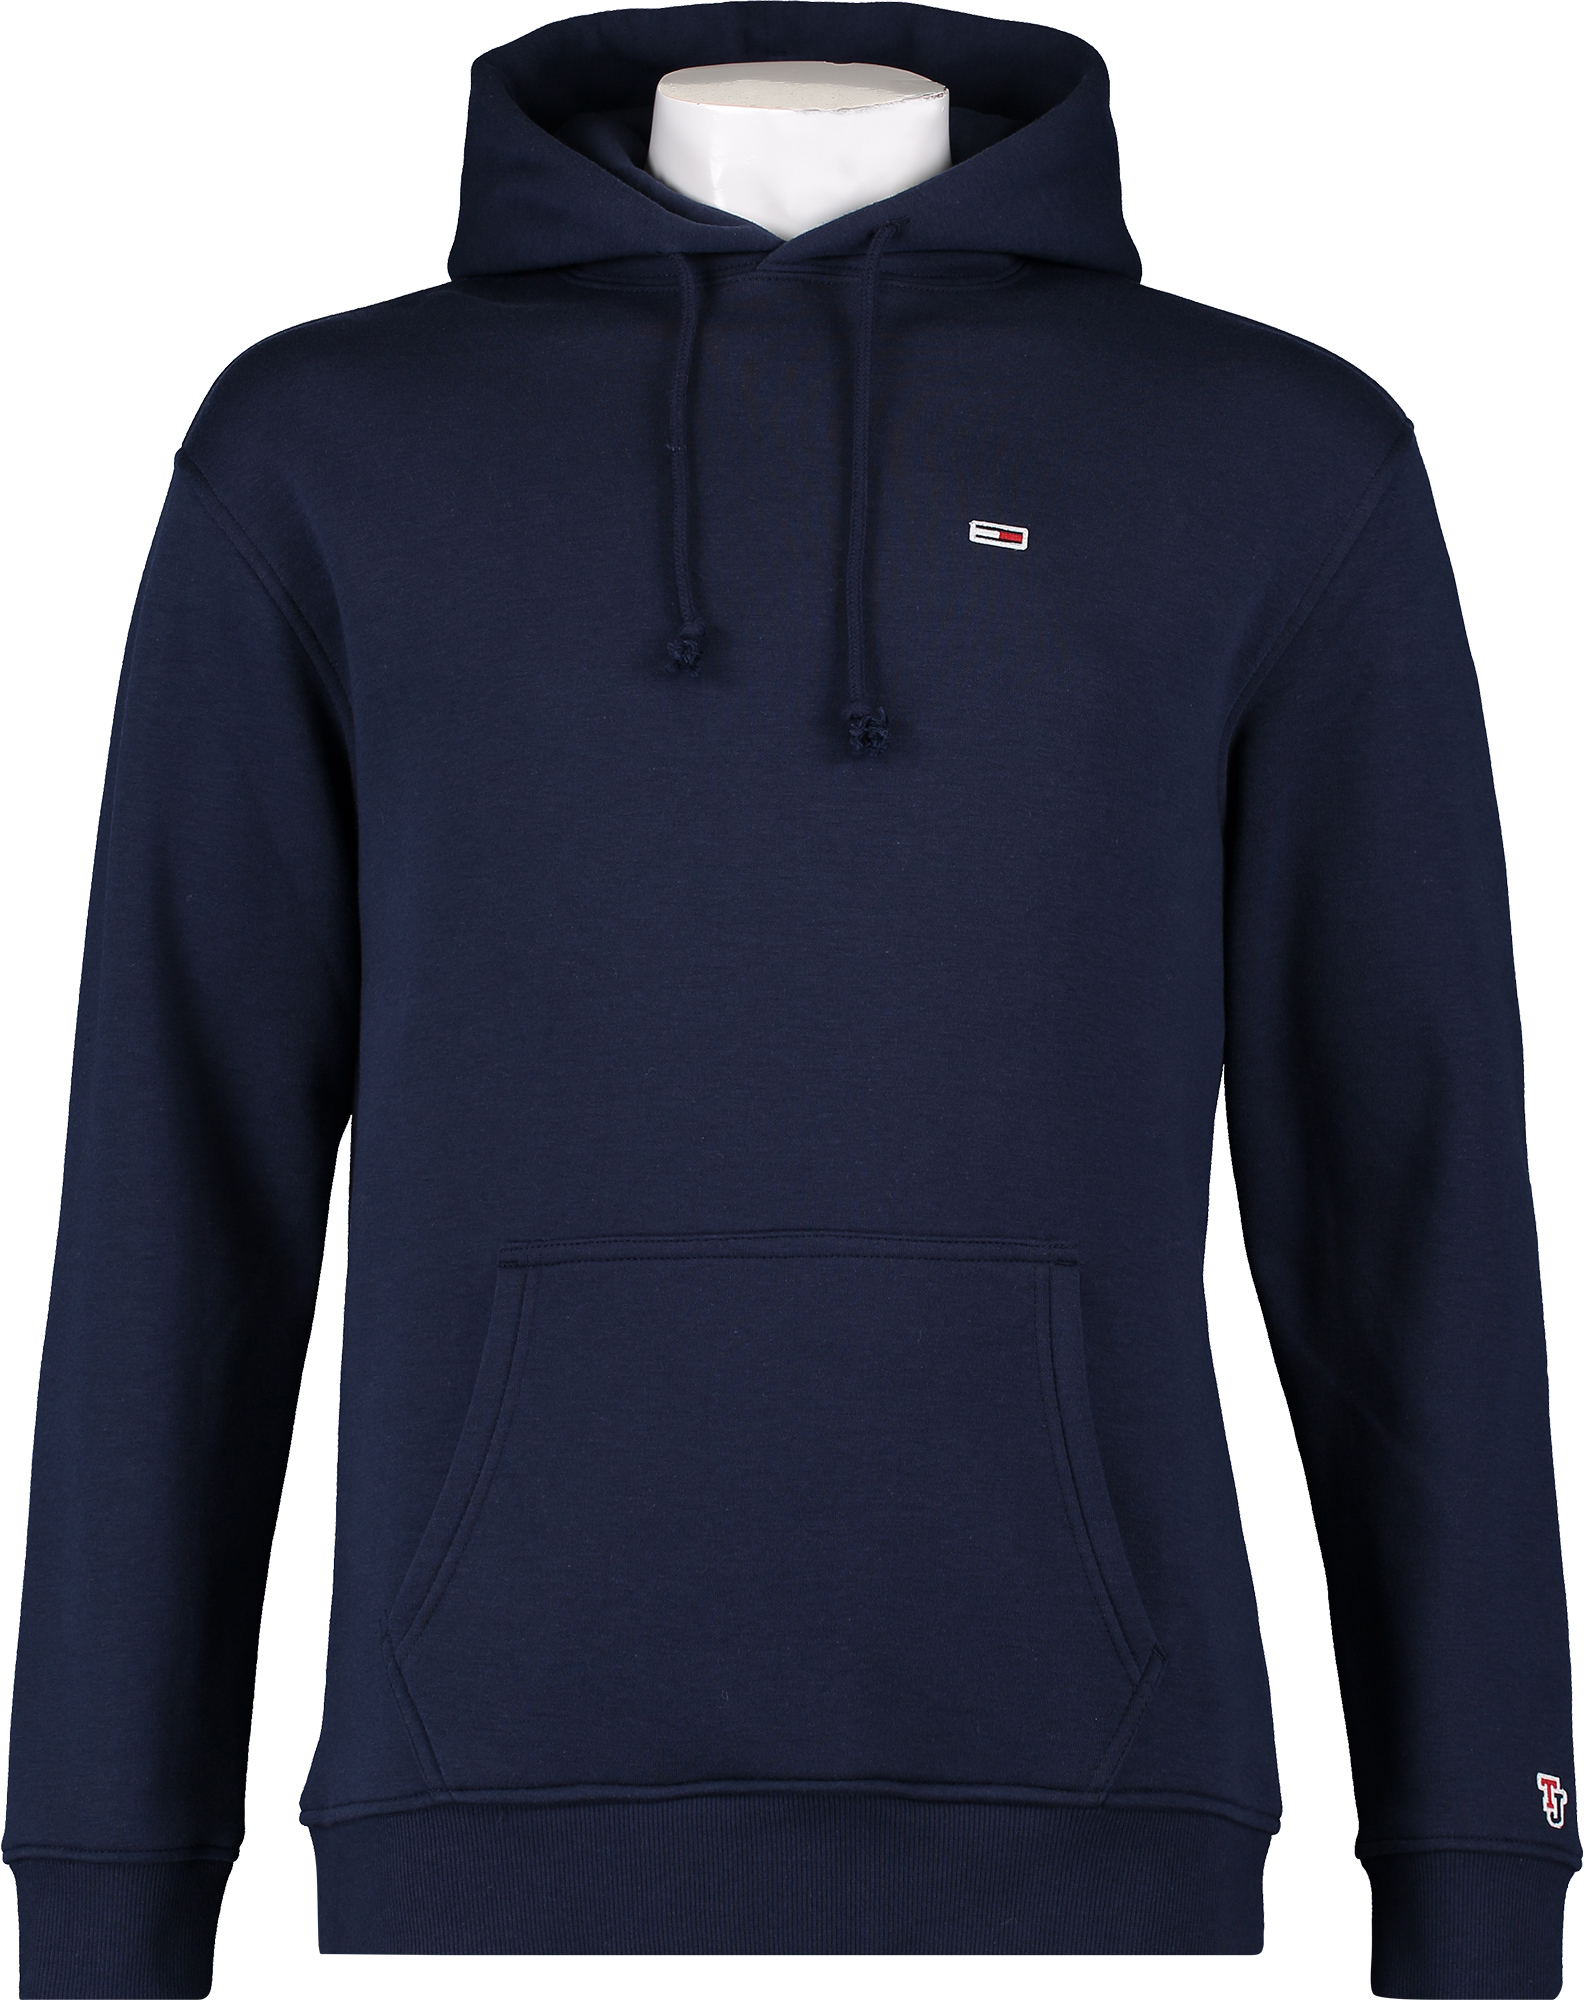 Piet Zoomers Tommy Hilfiger Jeans heren sweater